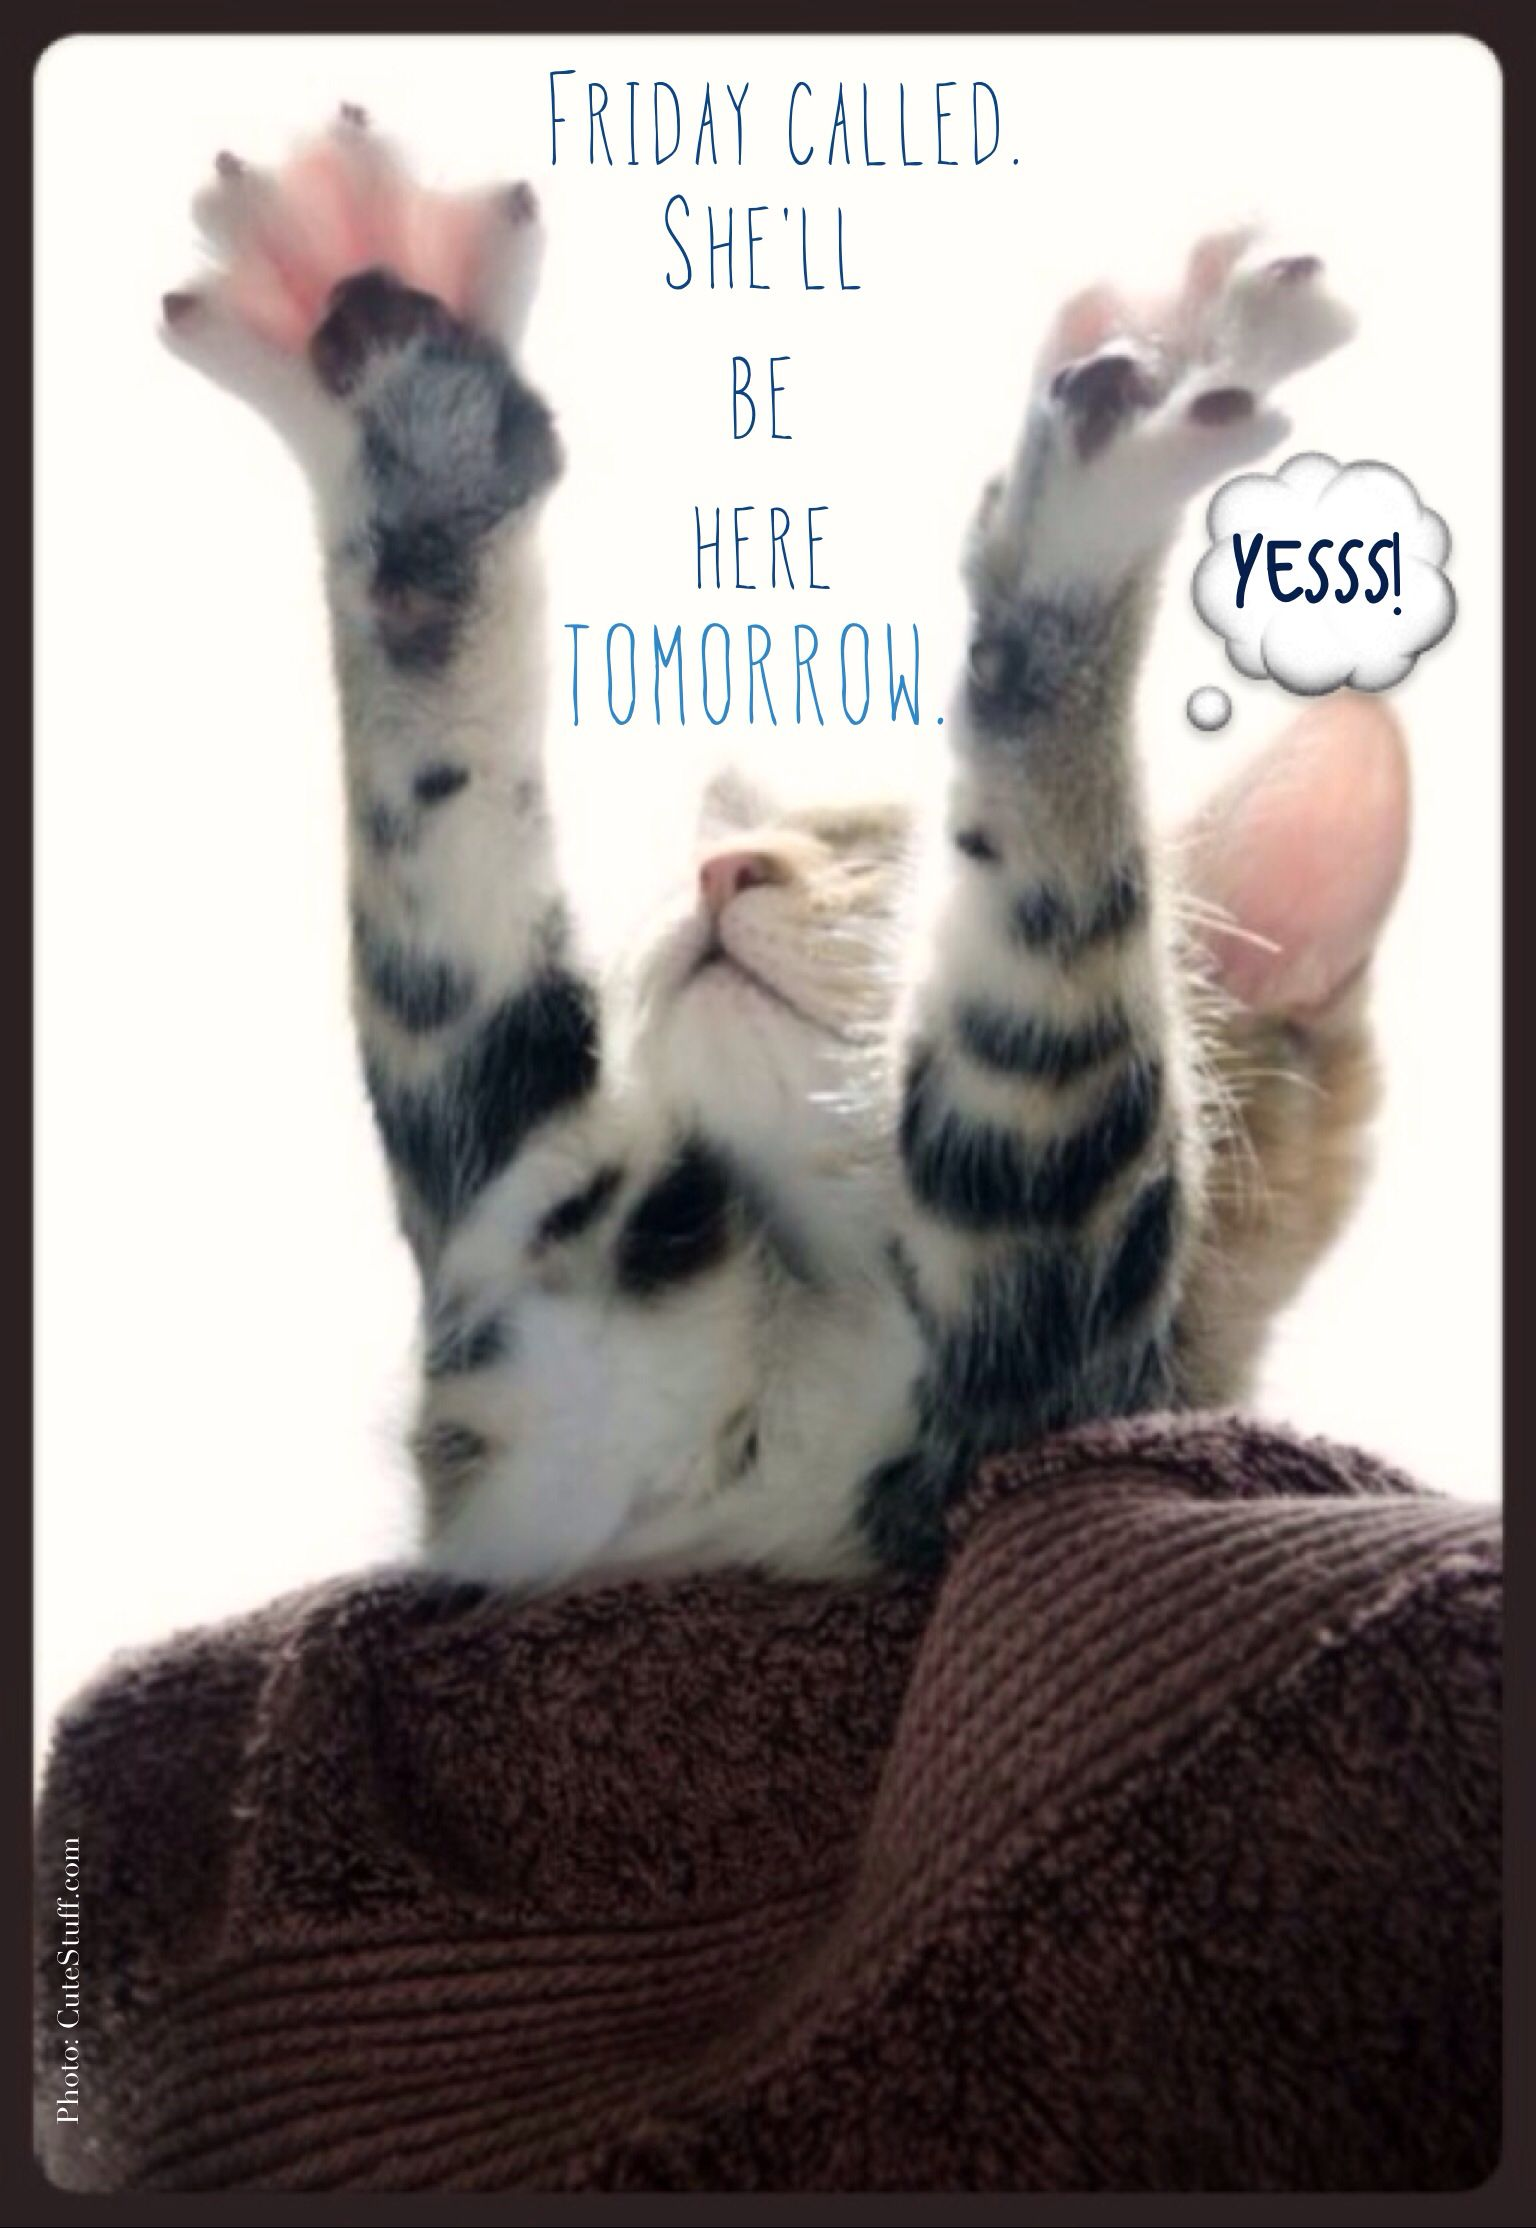 facf7f45bc5e8dd069231a2925423563 thursday humor cat funny cute almost friday can't wait for